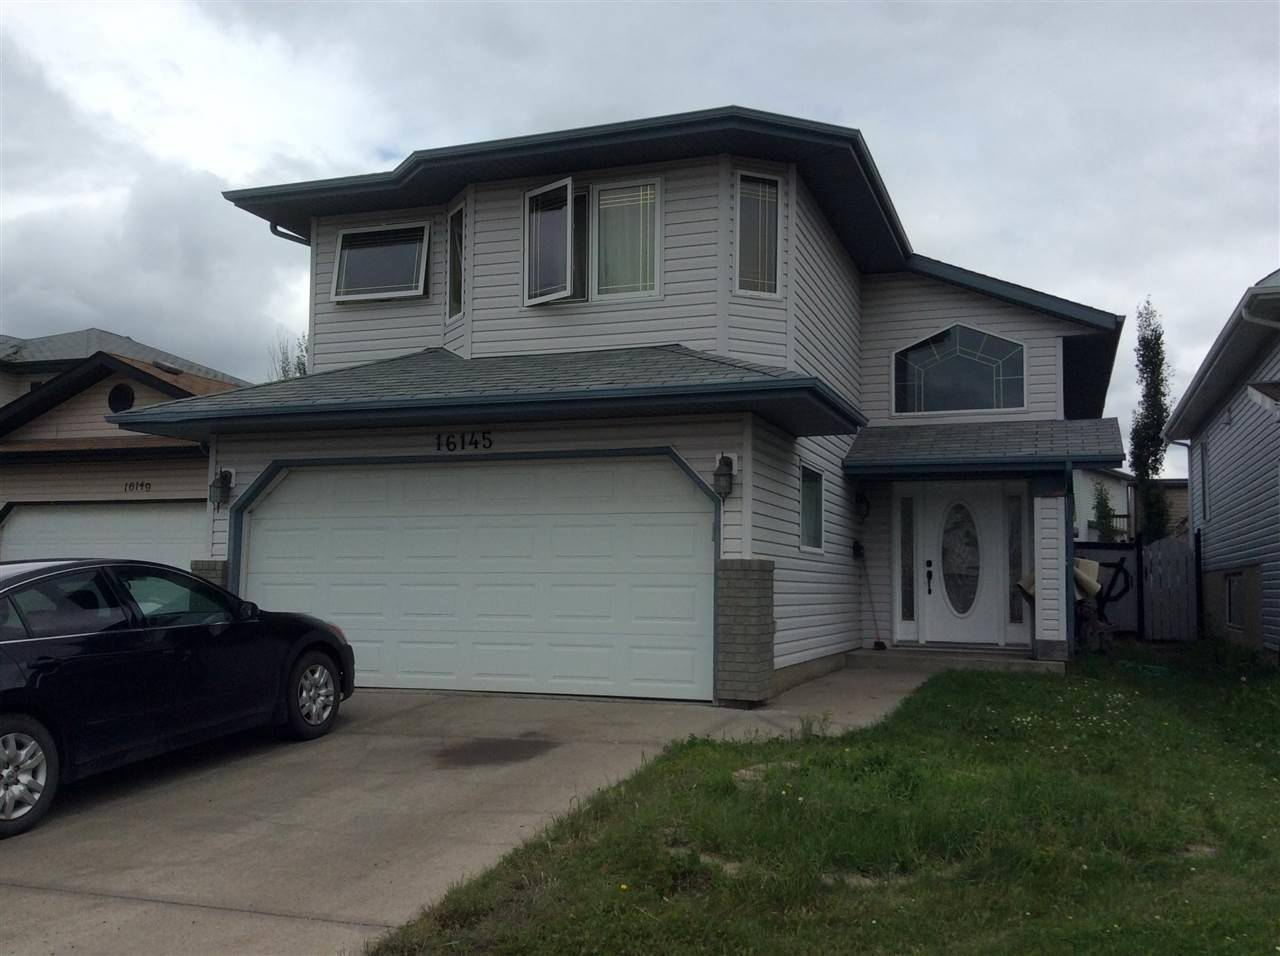 House for sale at 16145 128a St Nw Edmonton Alberta - MLS: E4165790